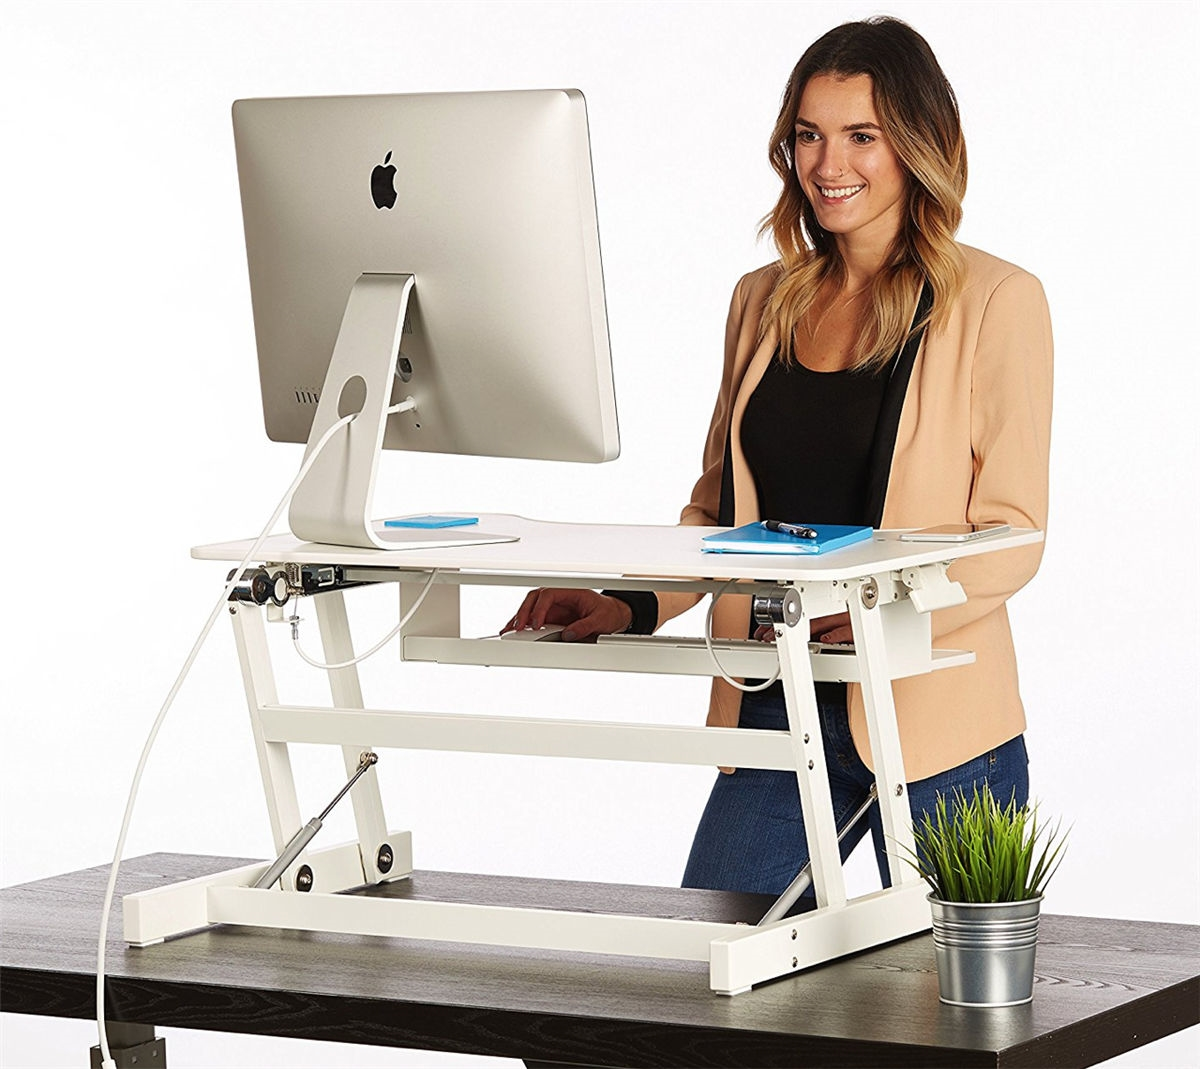 Picture of: White Standing Desk The Deskriser Height Adjustable Heavy Duty Sit To Stand Office Desk Supports Up To 50 Lbs 32 Wide Sit Stand Up Desk Converter